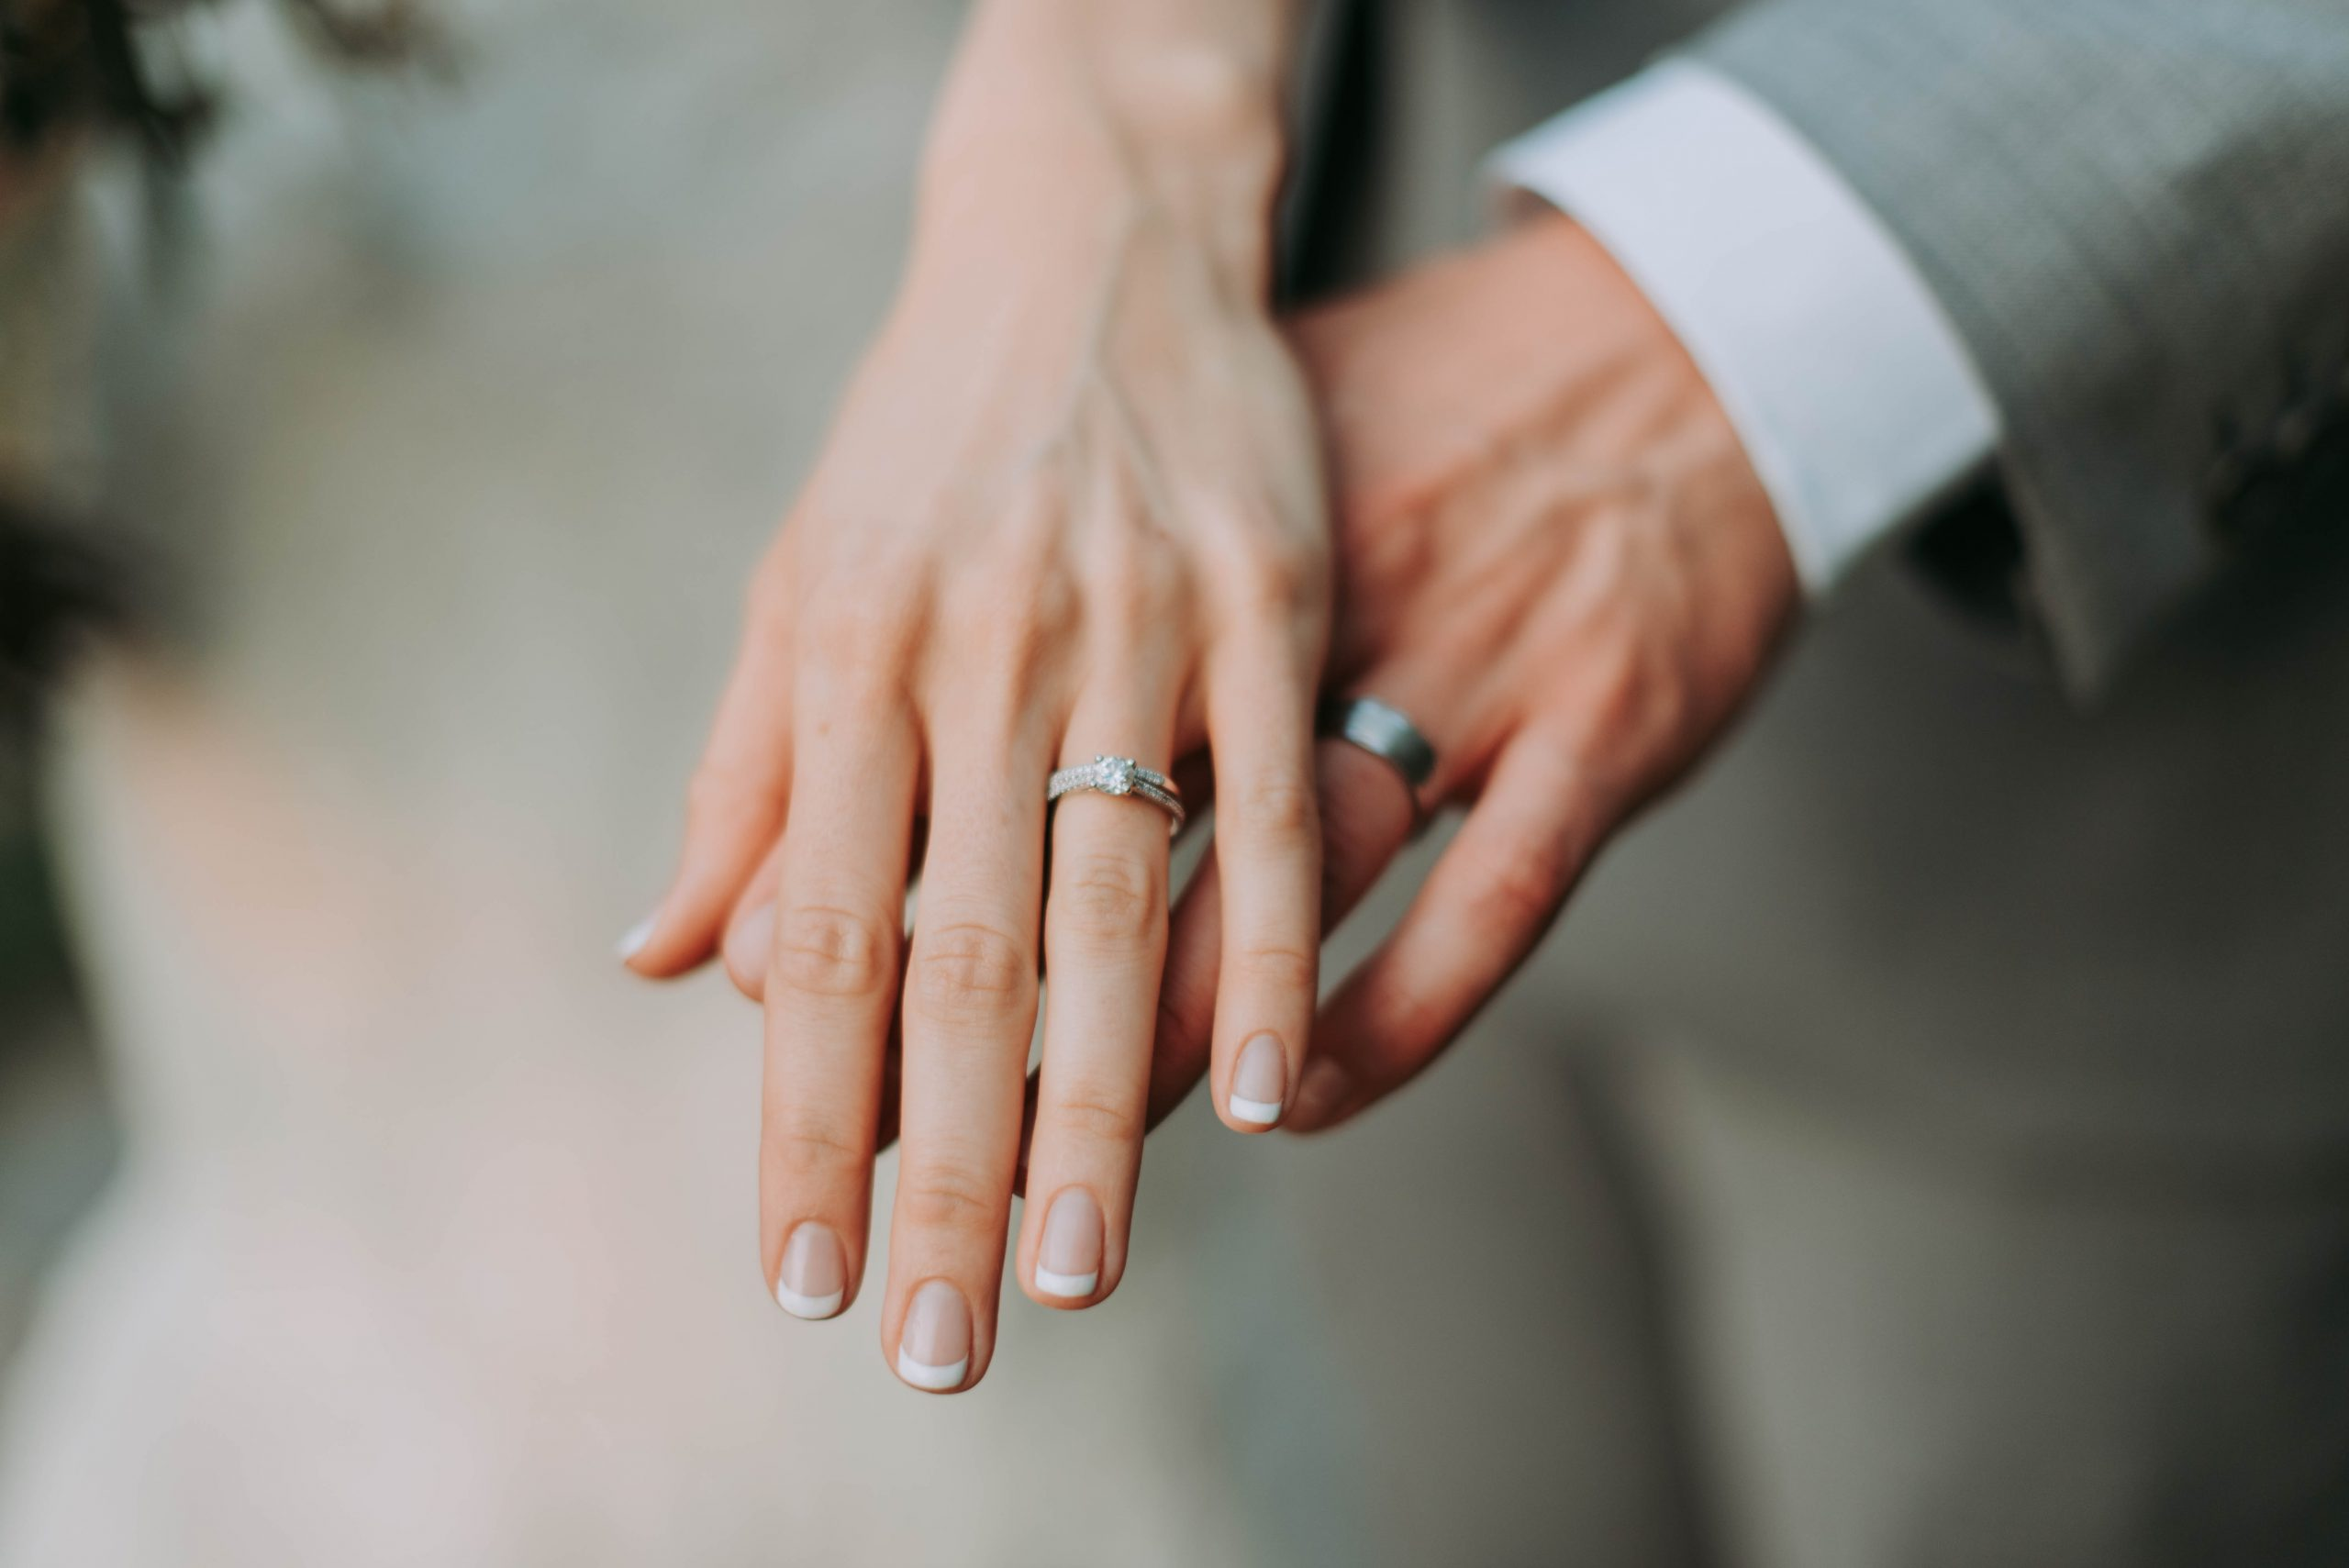 woman and man's hand showing off wedding rings. Photo by Samantha Gades on Unsplash